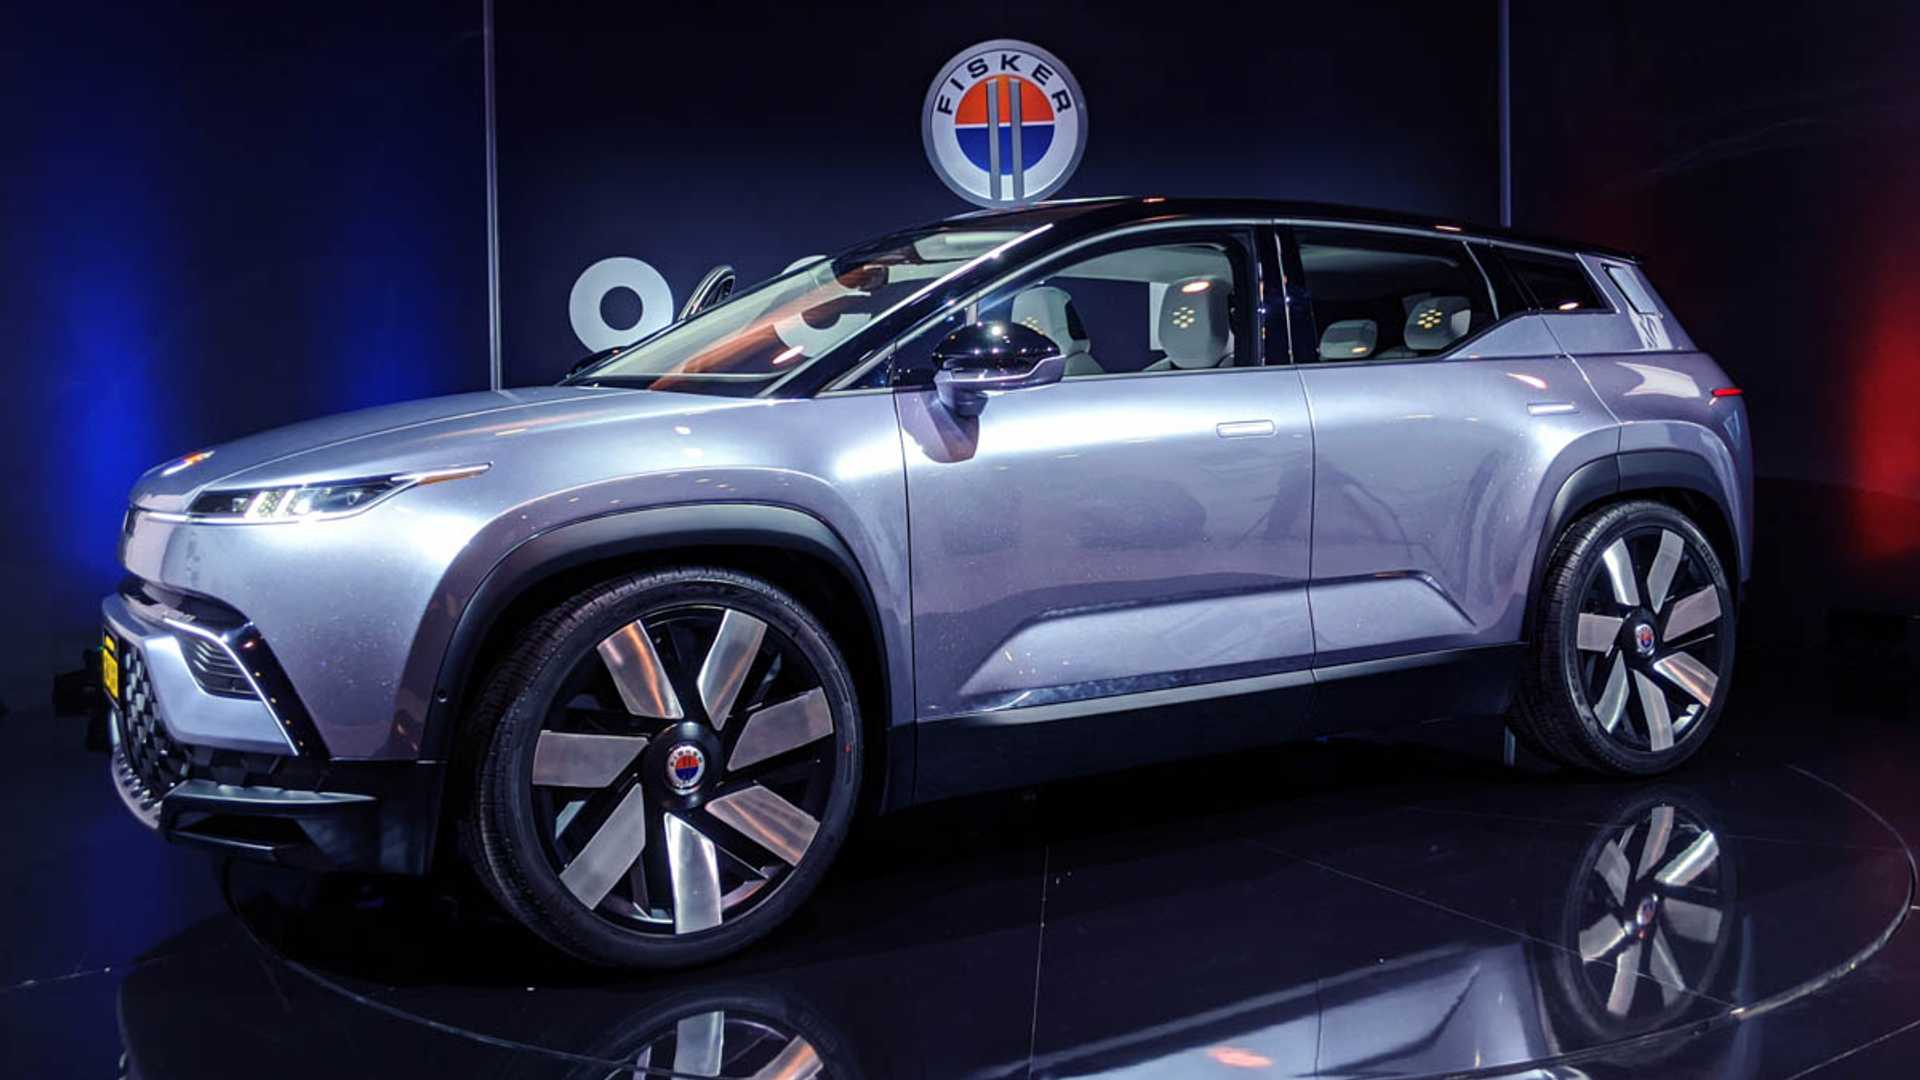 Fisker Ocean Coming To LA Show With 'The Most Amazing Center Screen'